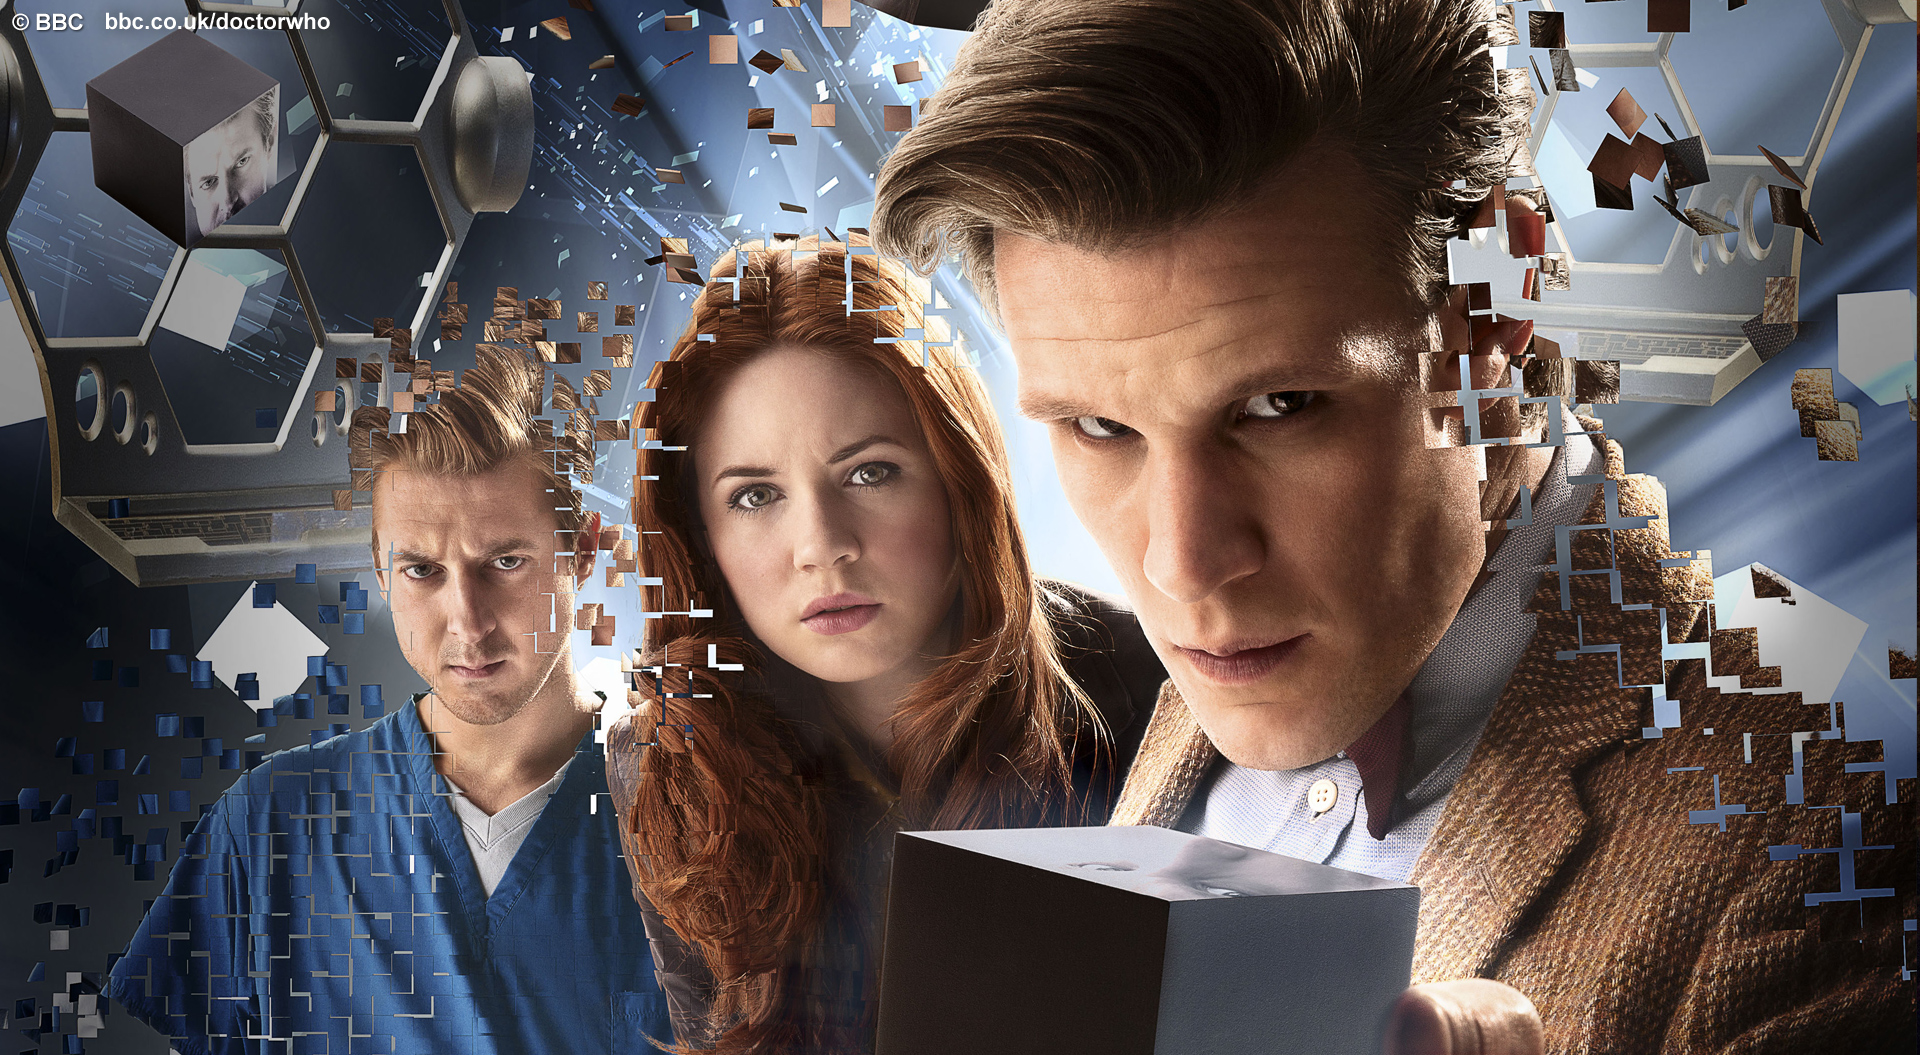 BBC Latest News   Doctor Who   The Power of Three Wallpapers 1920x1055